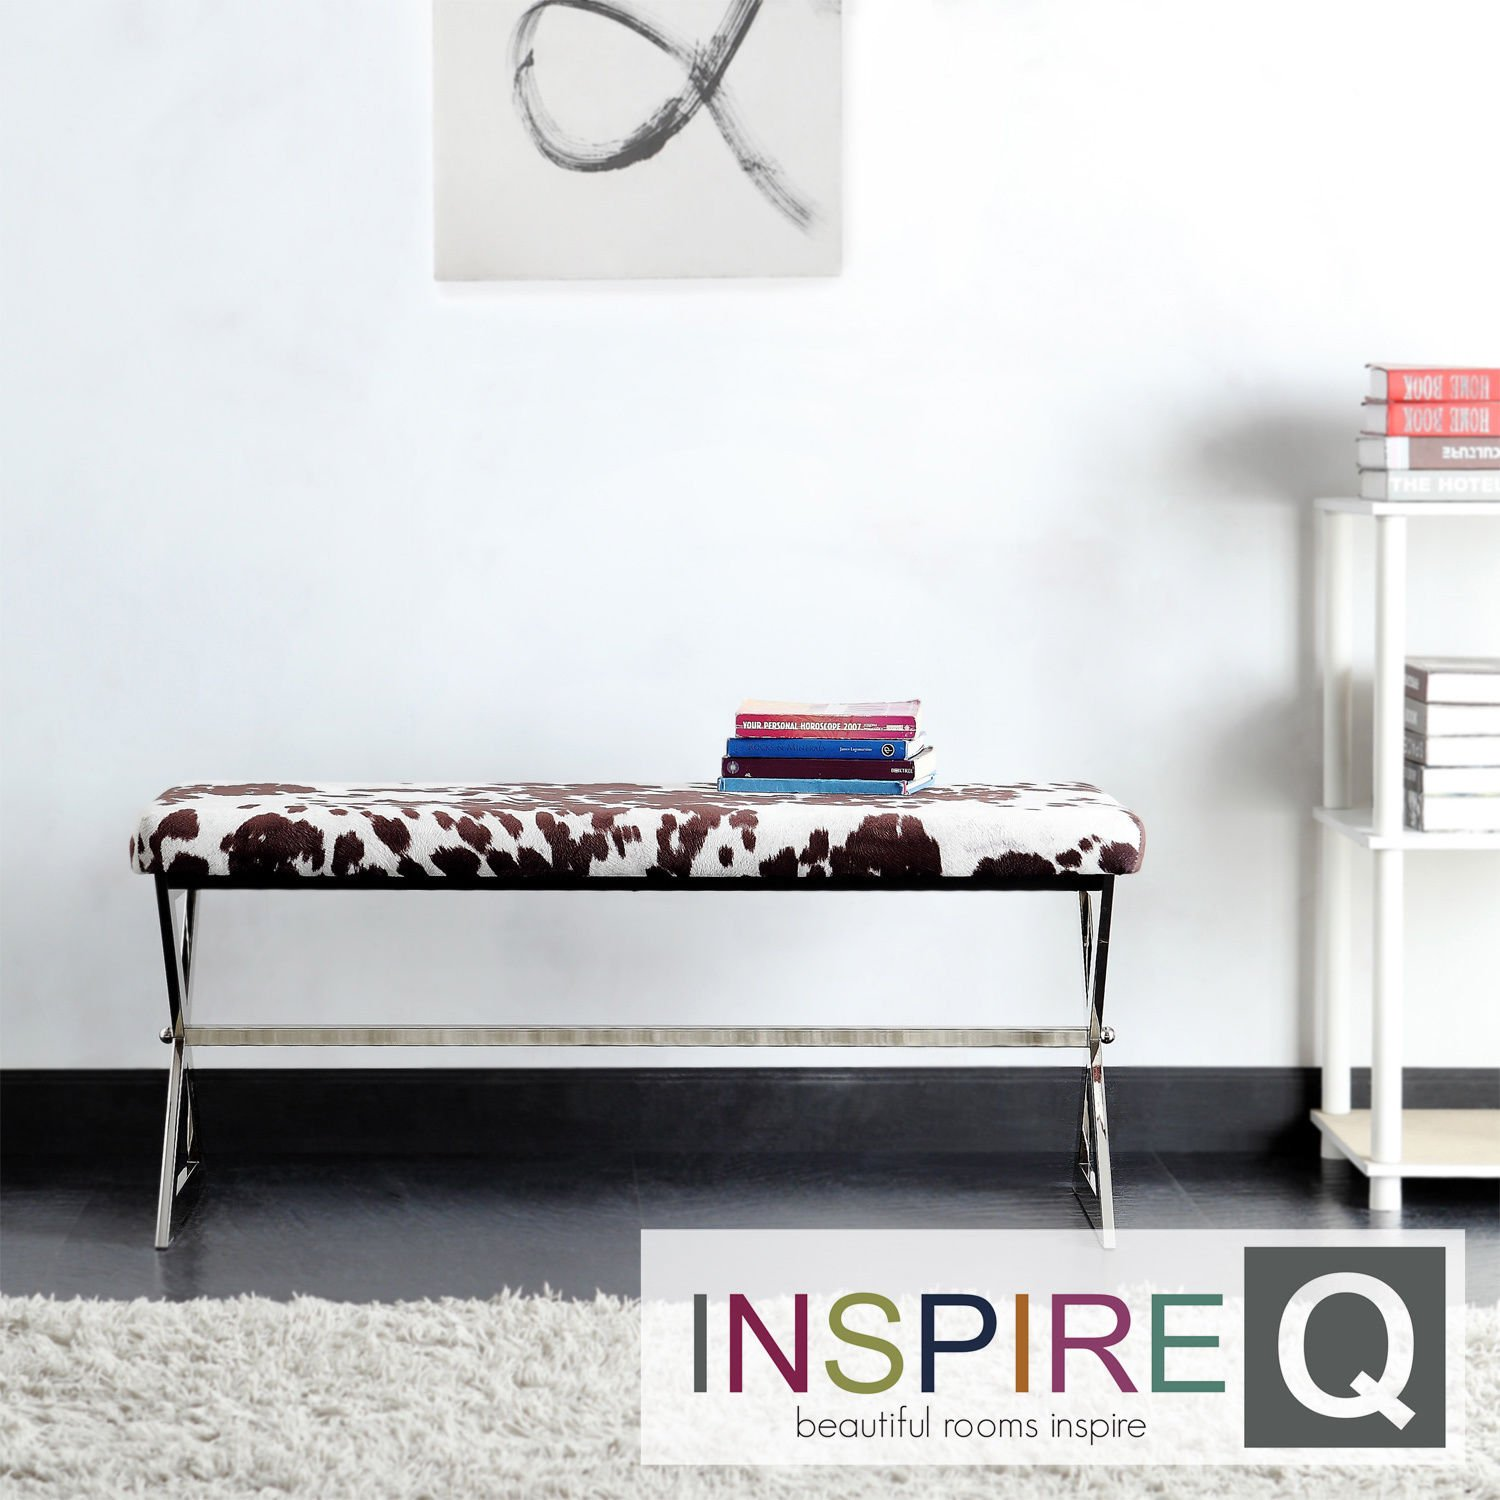 Amazon.com: Metro Shop INSPIRE Q Southport Cowhide Print 40-inch Metal Bench:  Kitchen & Dining